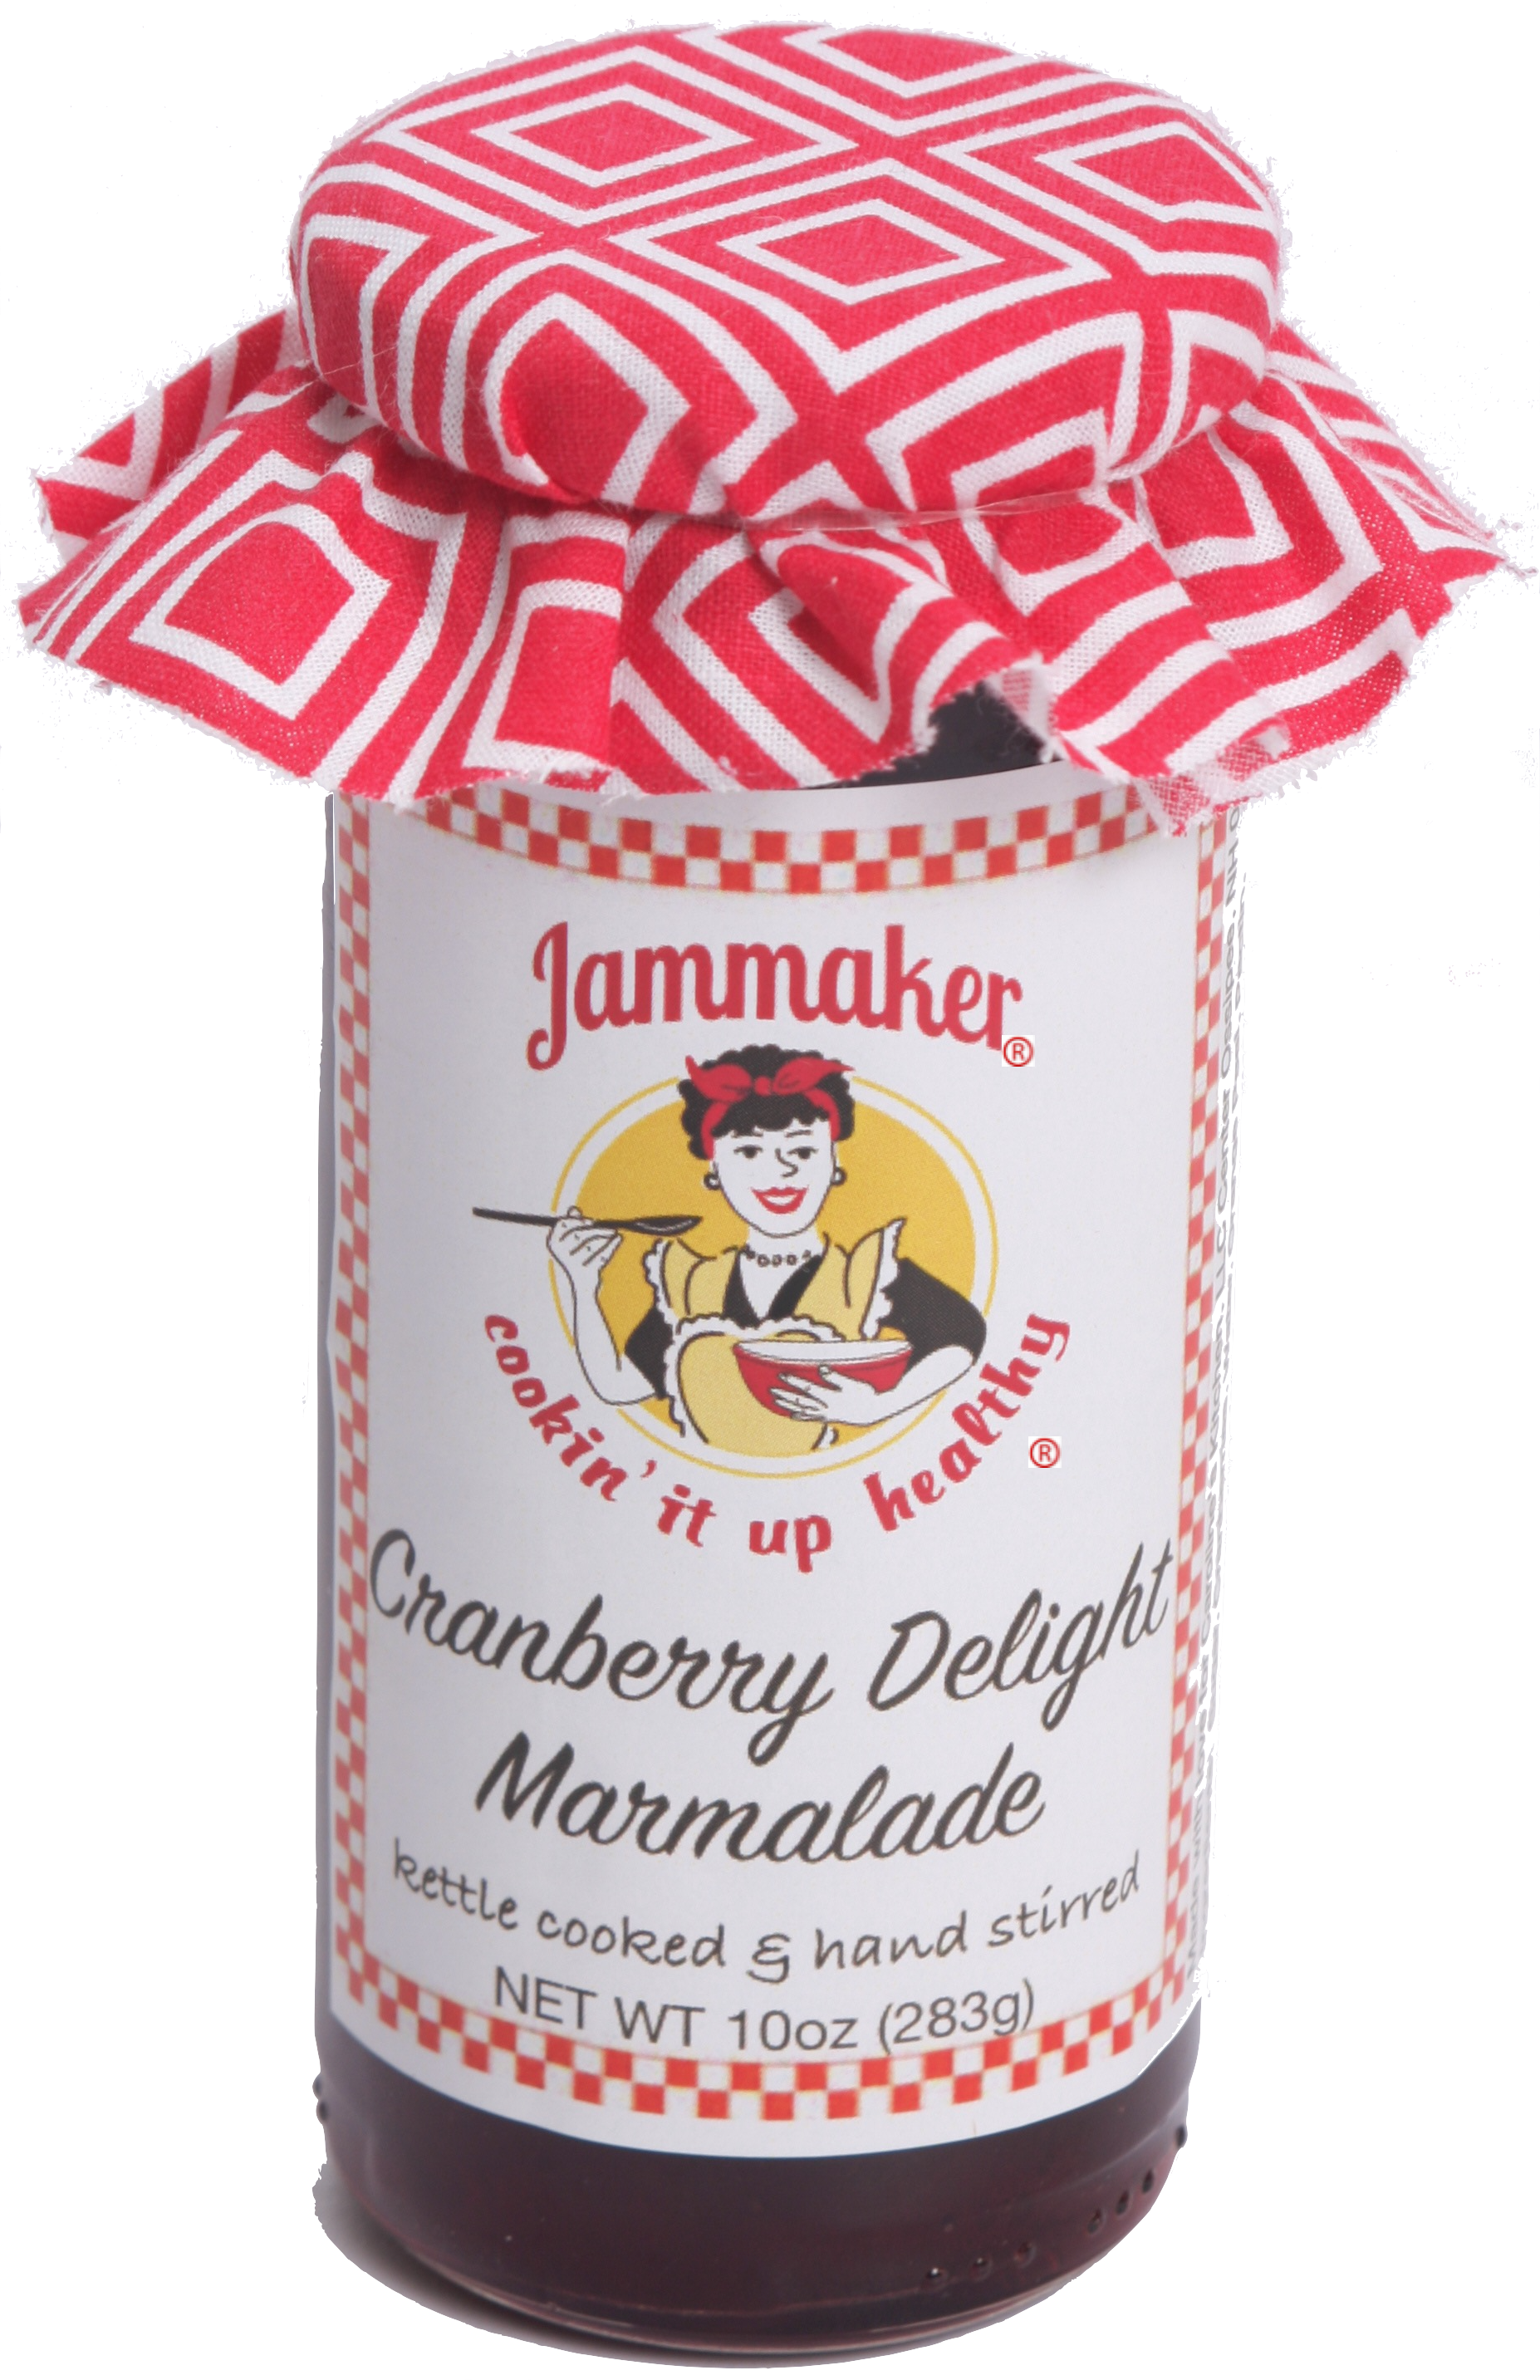 Cranberry Delight Marmalade